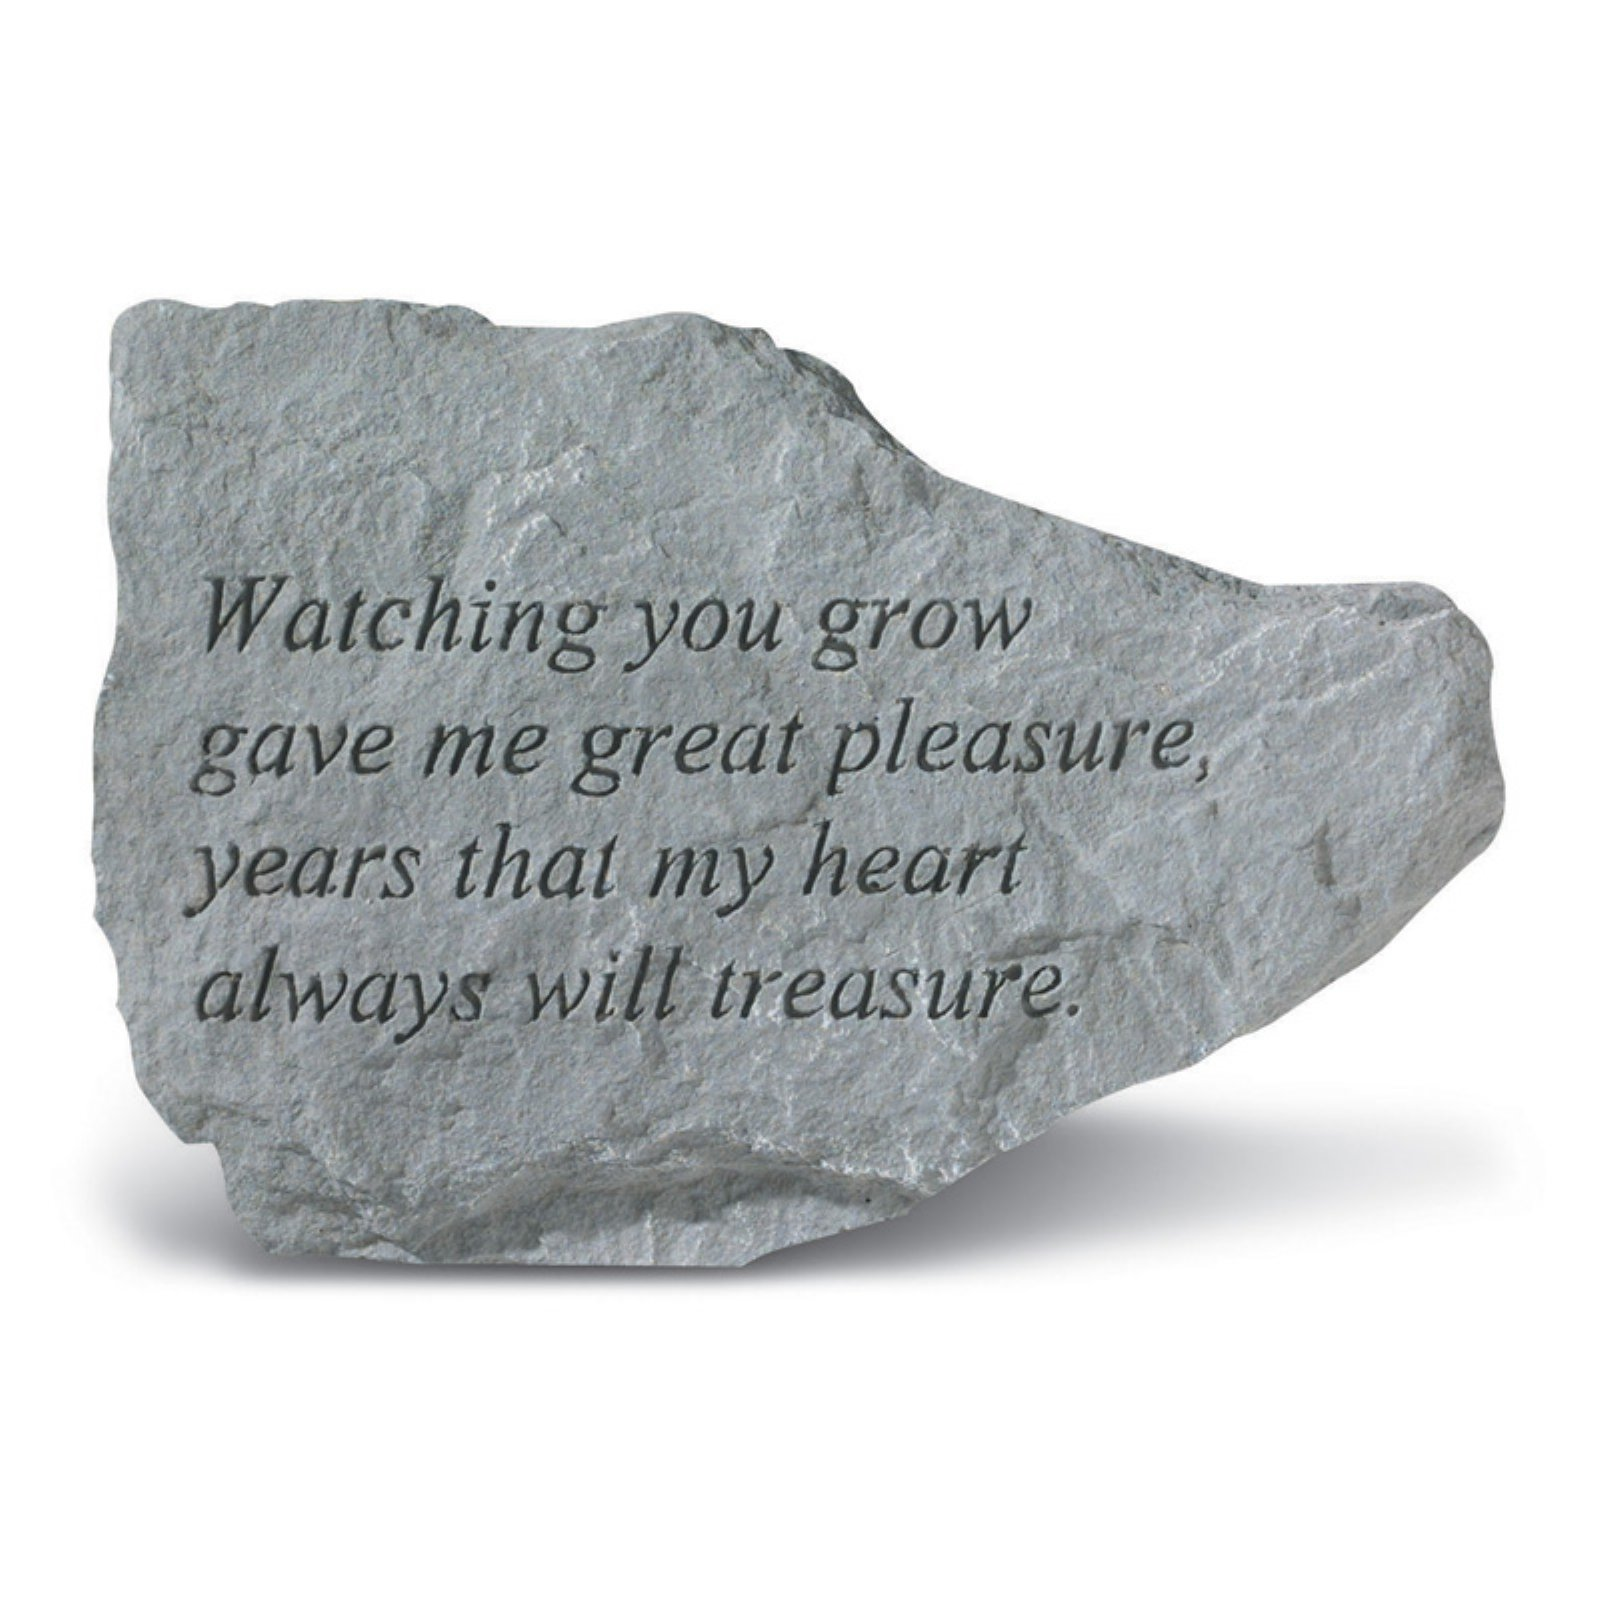 Watching You Grow Garden Accent Stone by Kay Berry